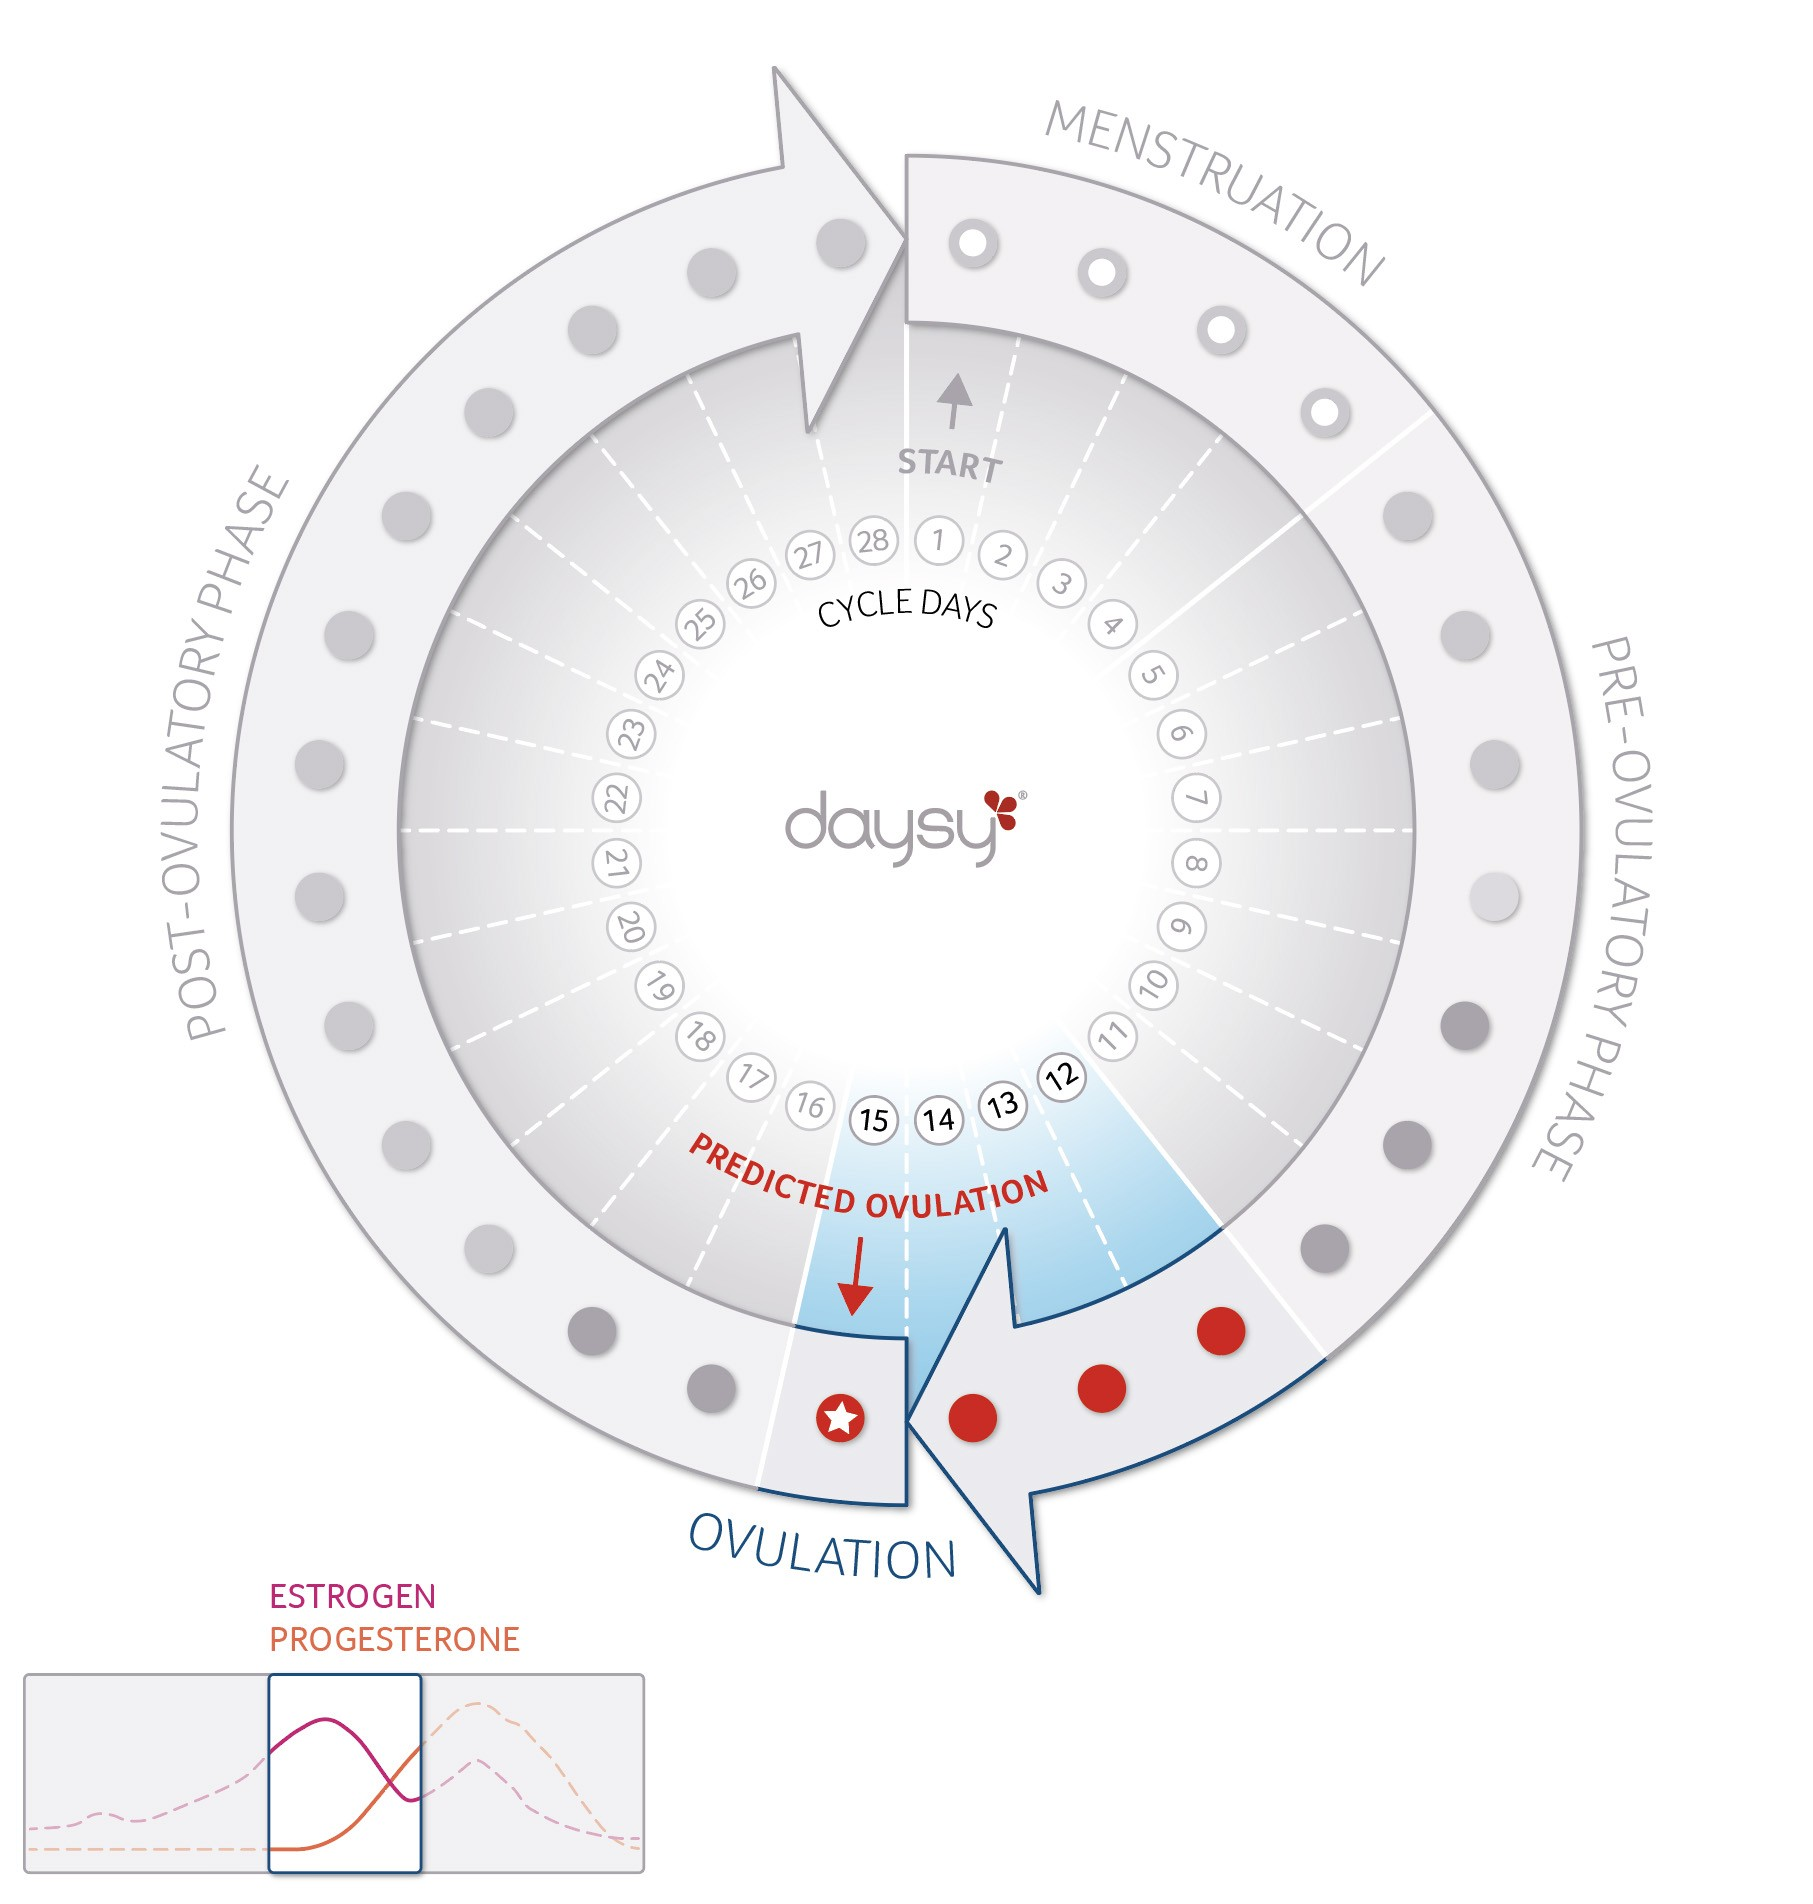 The menstrual cycle: Ovulation